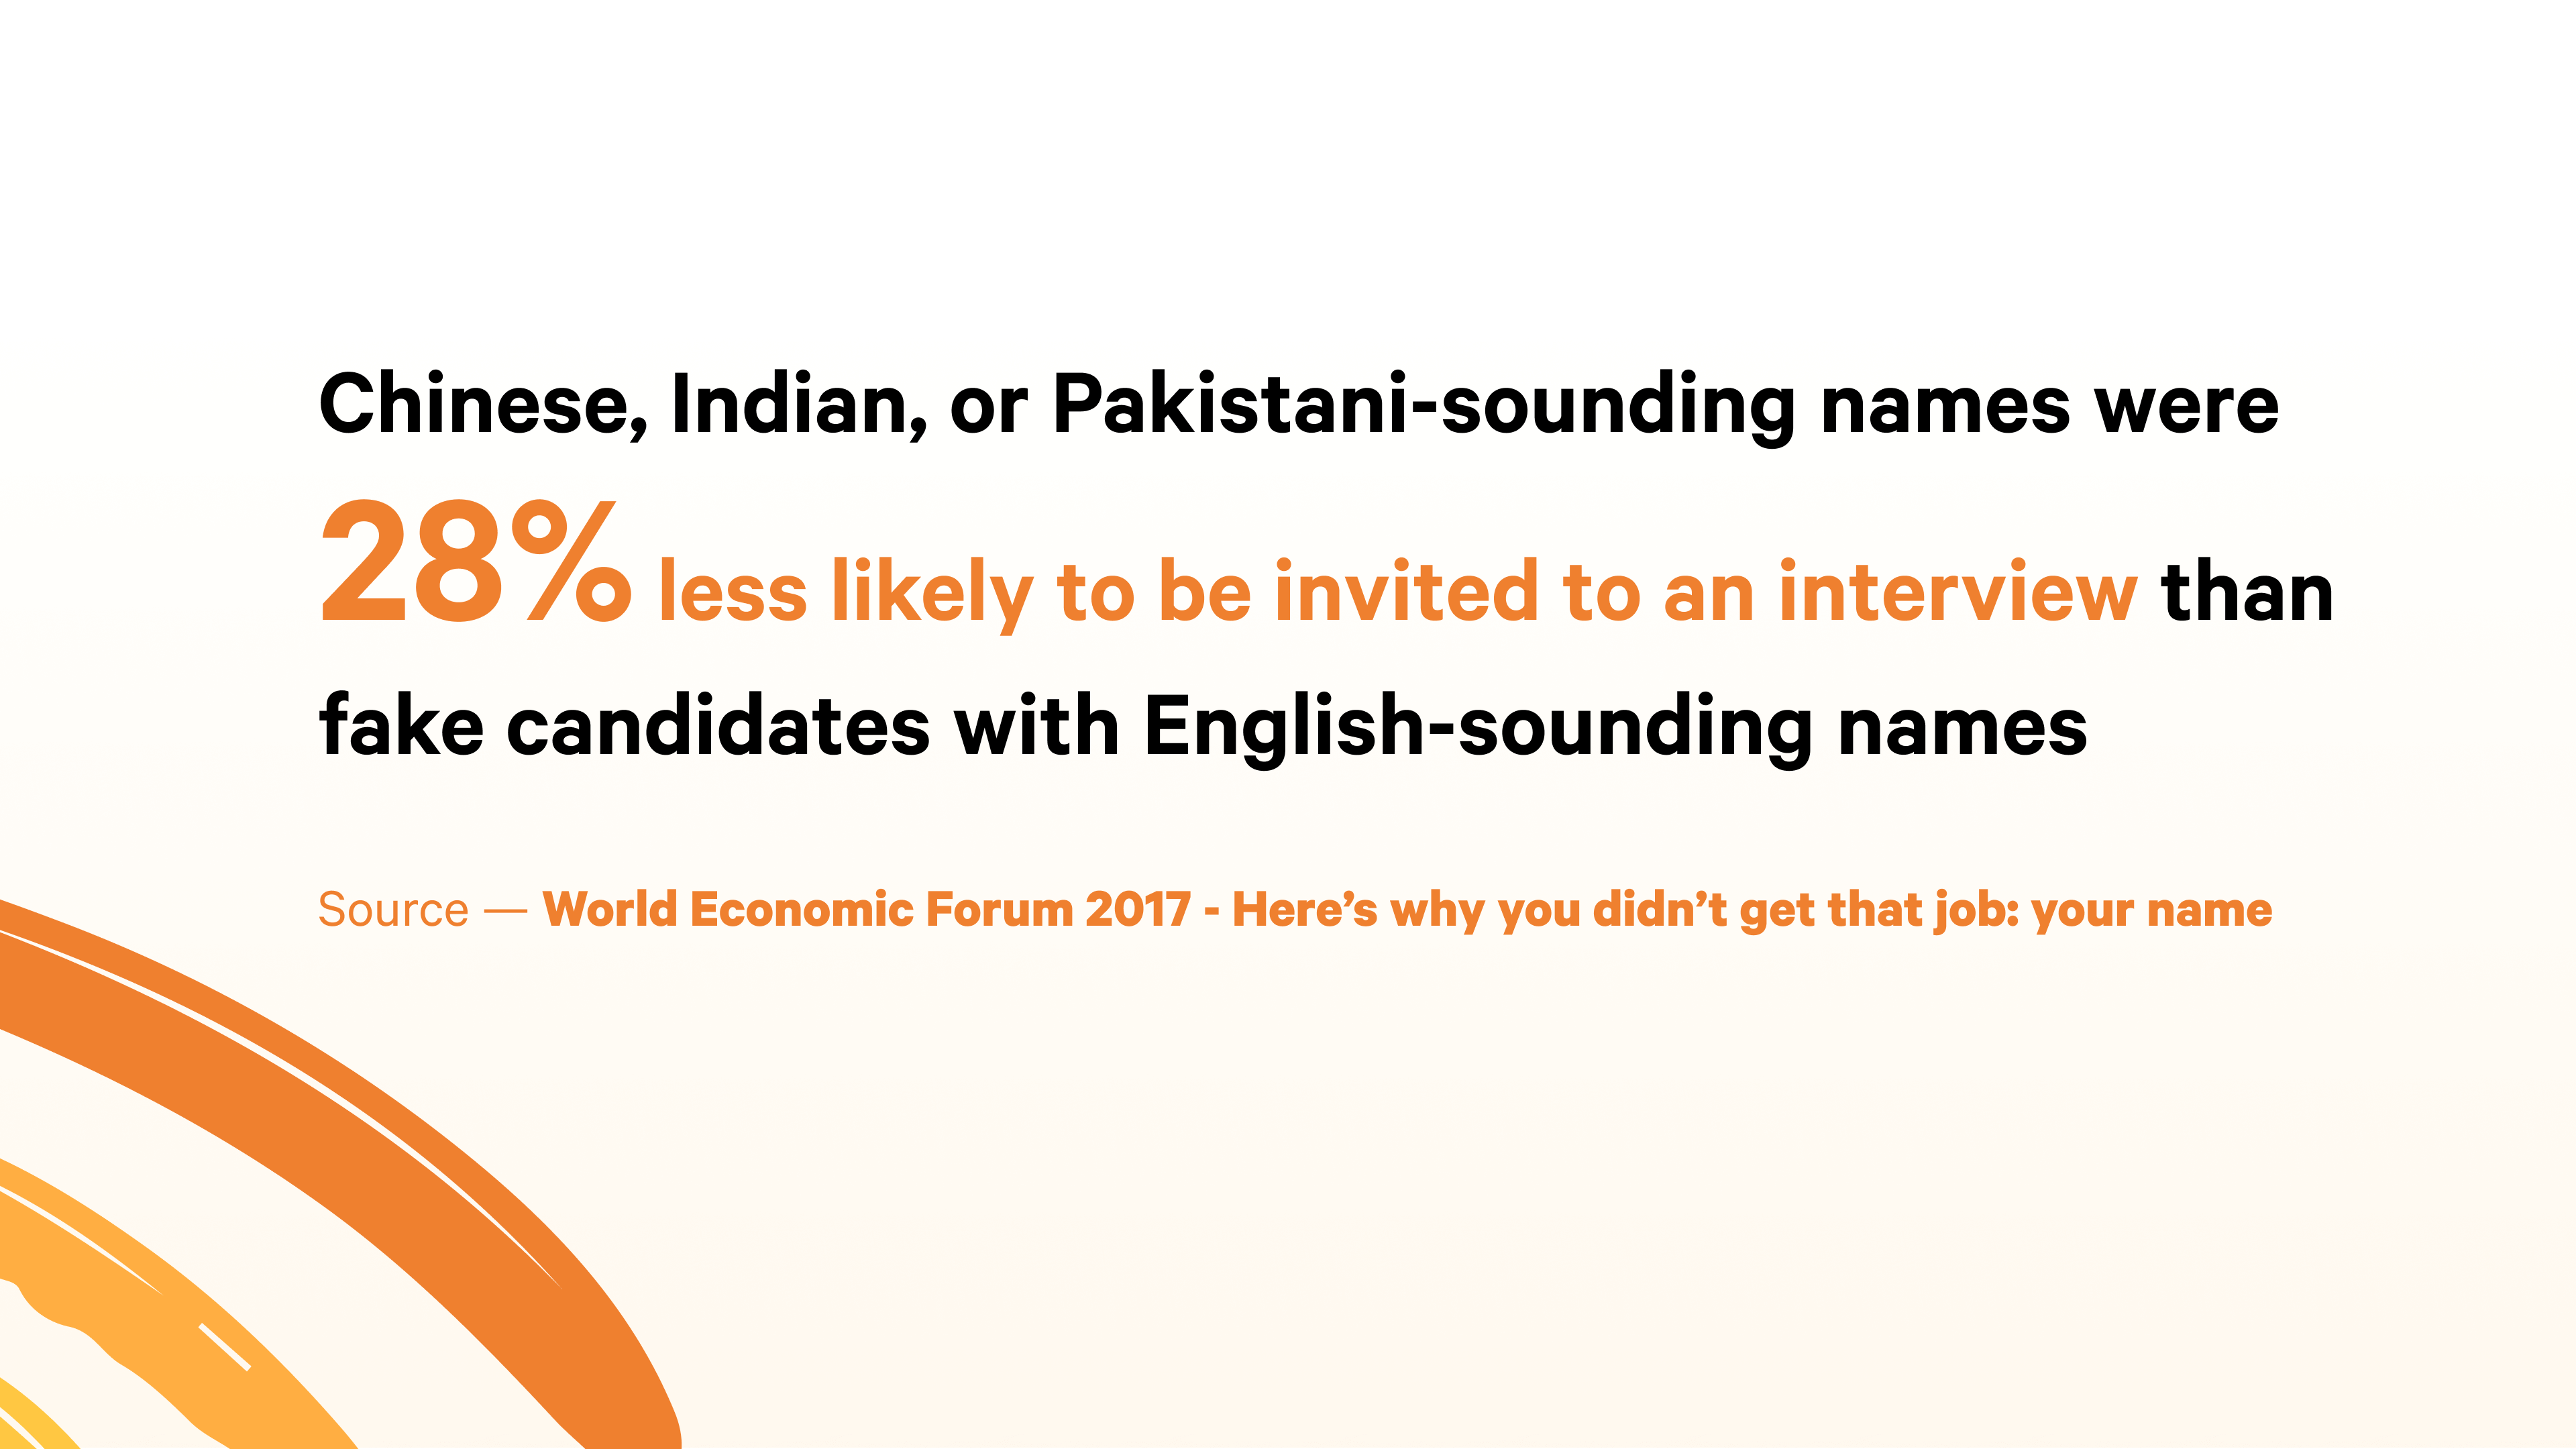 Chinese, Indian, or Pakistani-sounding names were 28% less likely to be invited to an interview than fake candidates with English-sounding names